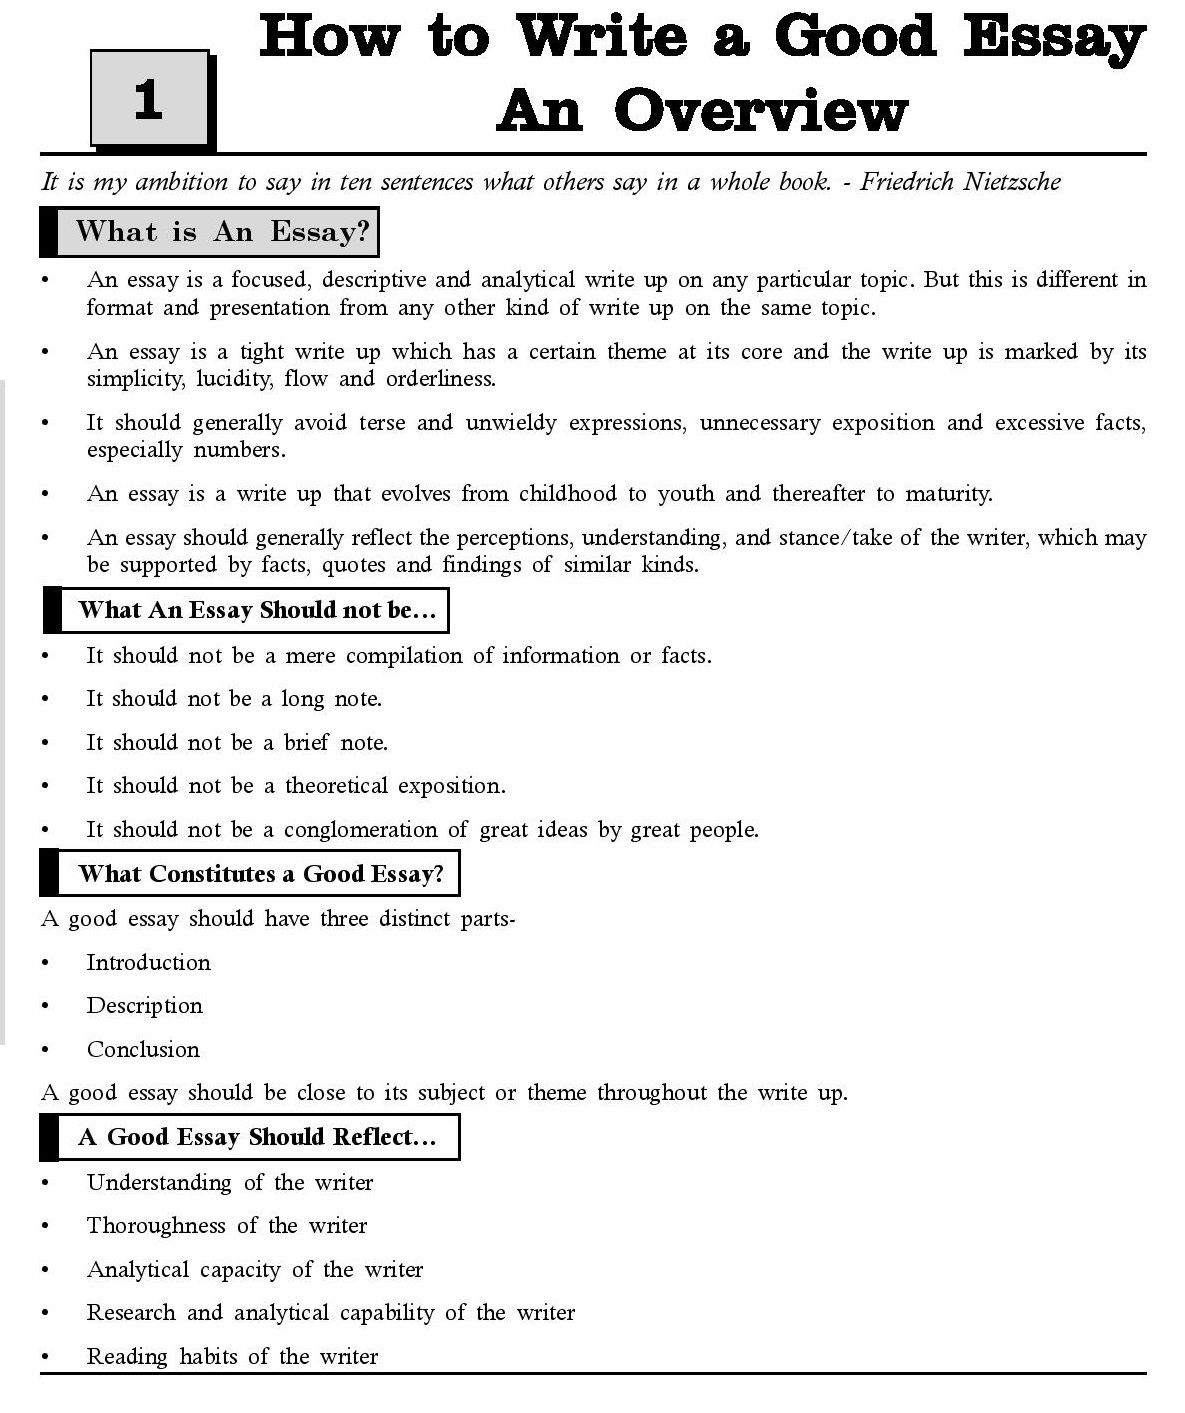 What is order in essay writing